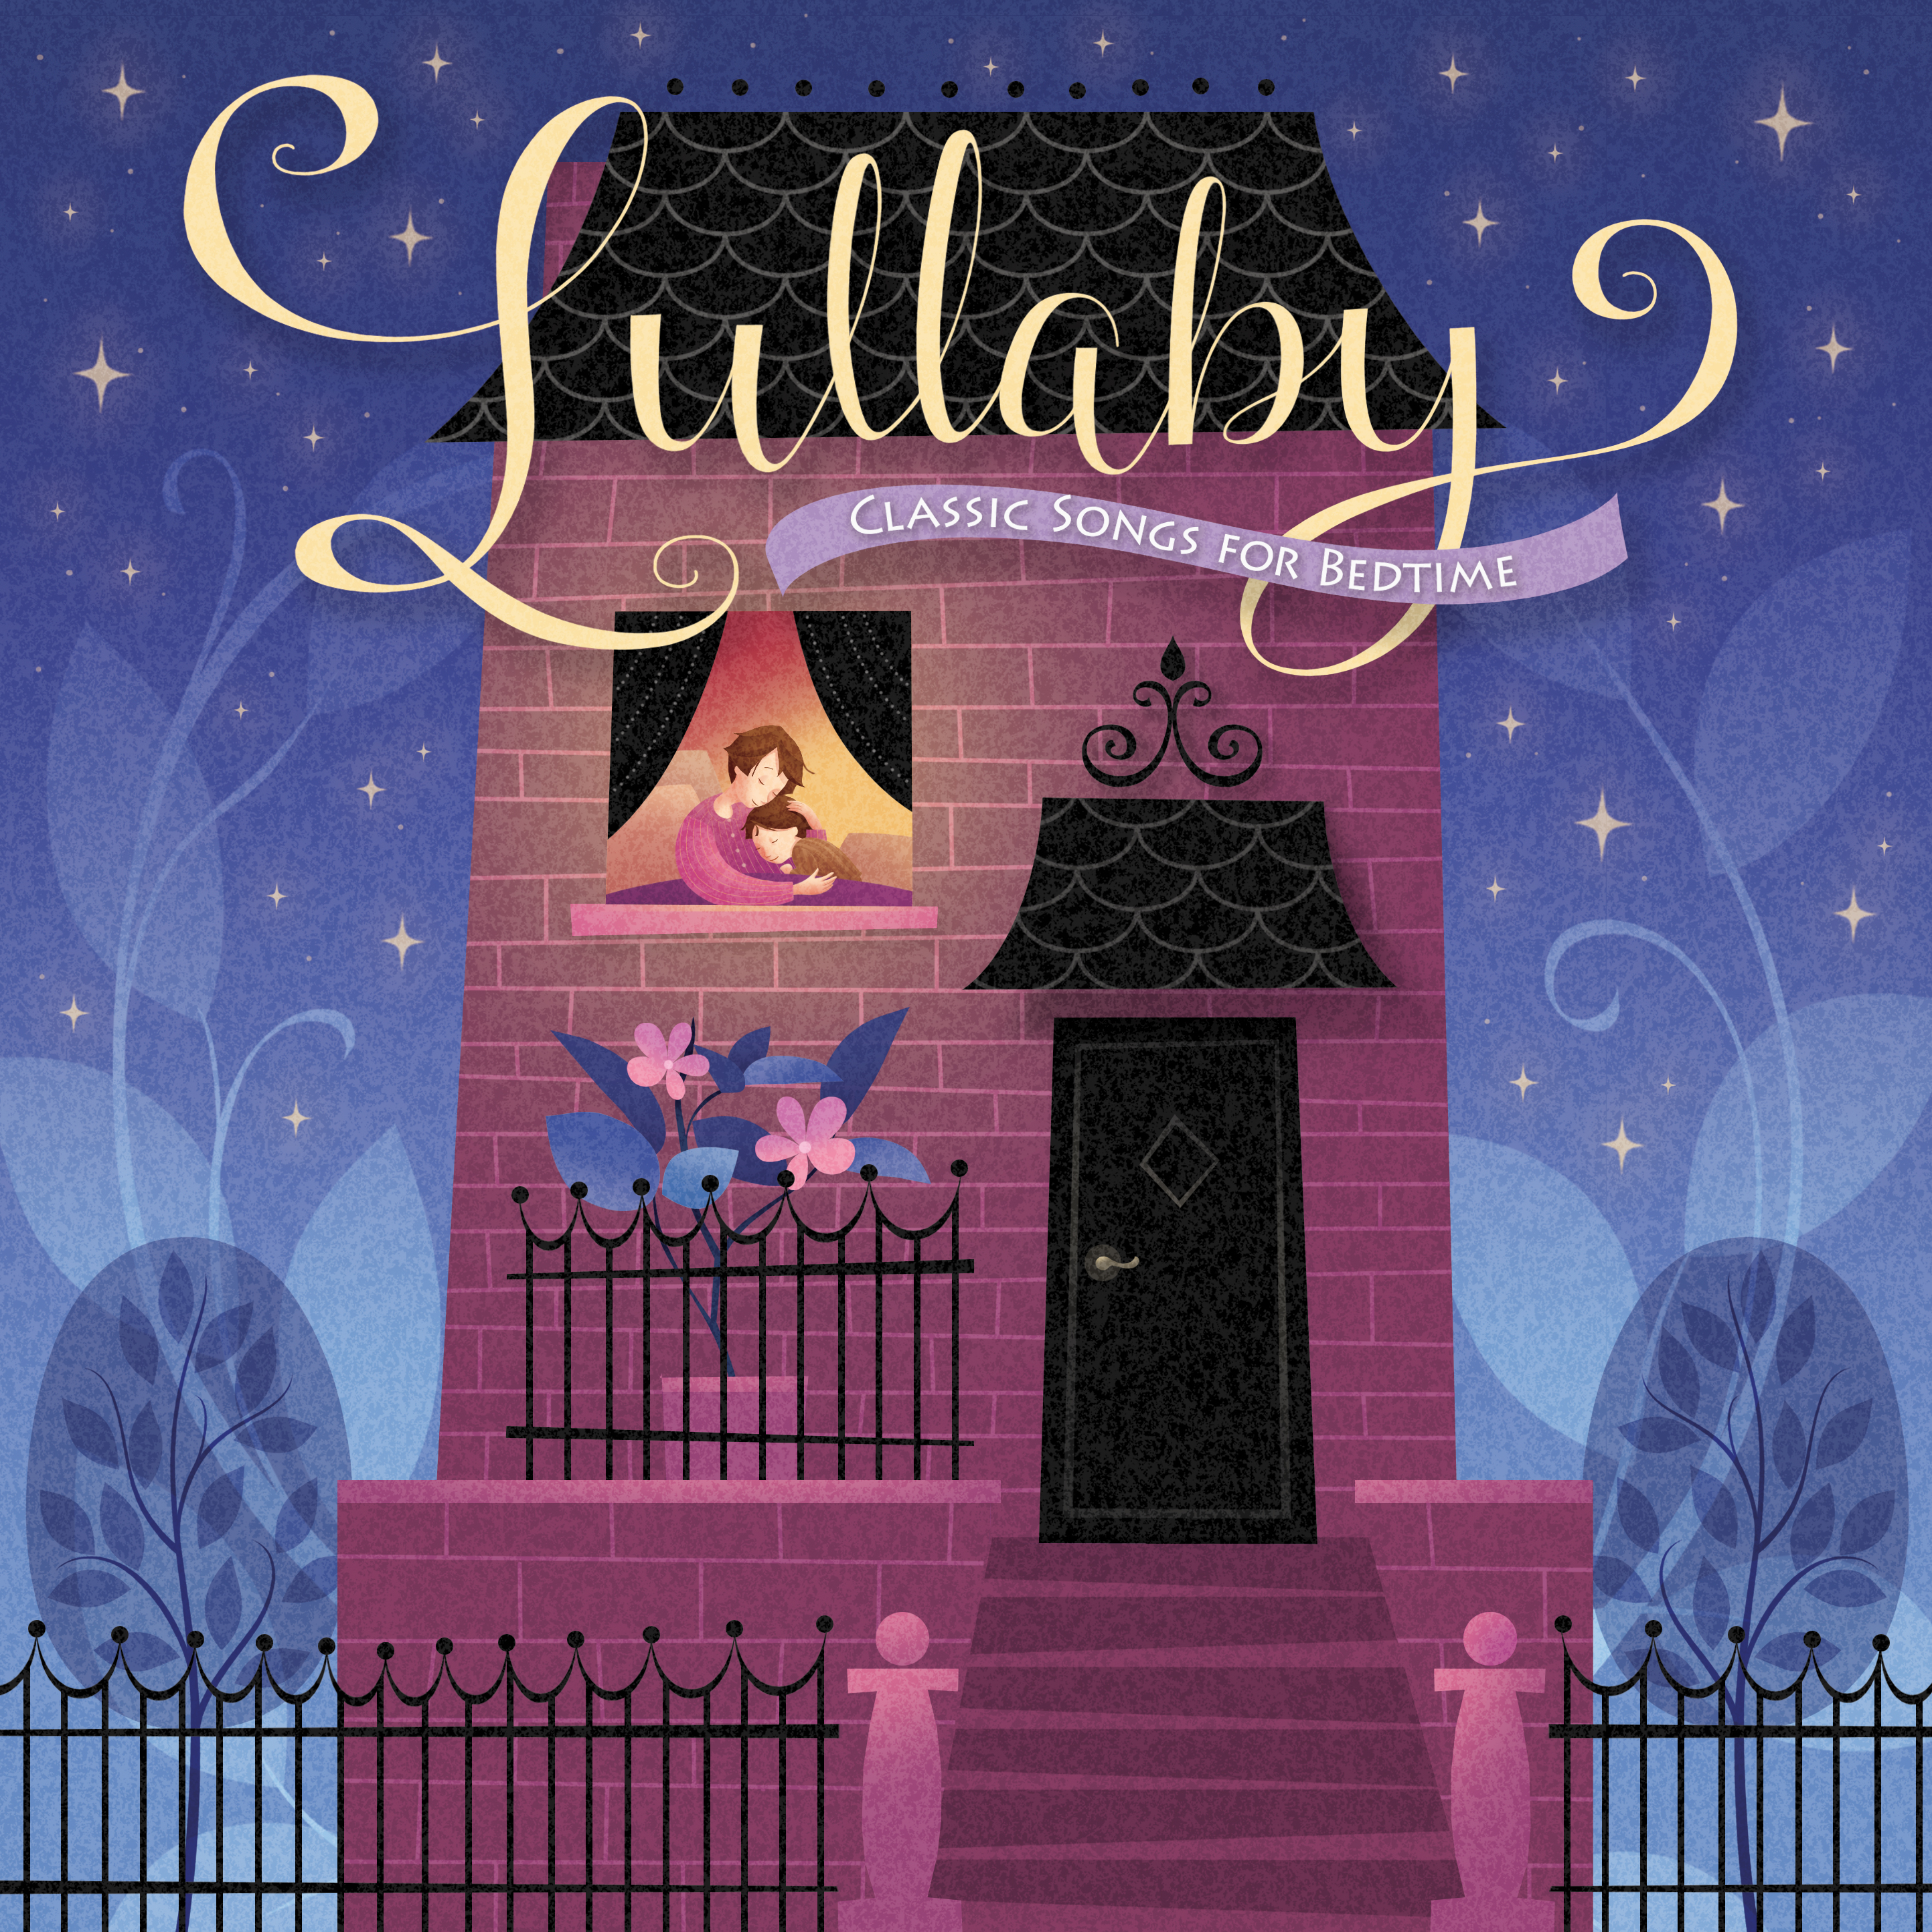 Lullaby: Classic Songs for Bedtime